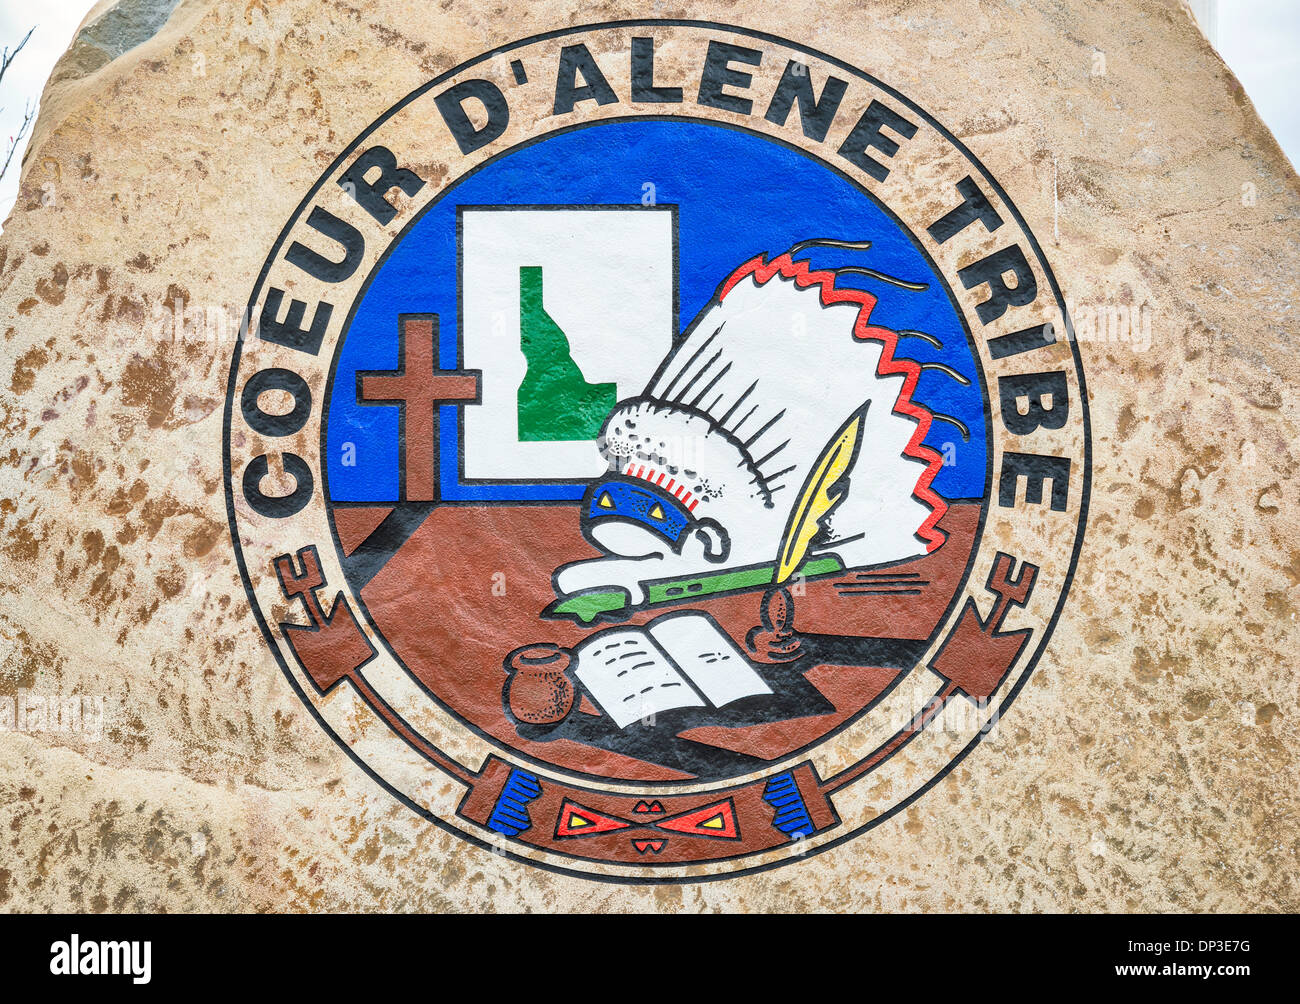 Tribe logo at trailhead at Trail of the Coeur d'Alenes in Plummer, Coeur d'Alene Indian Reservation, Idaho, USA - Stock Image